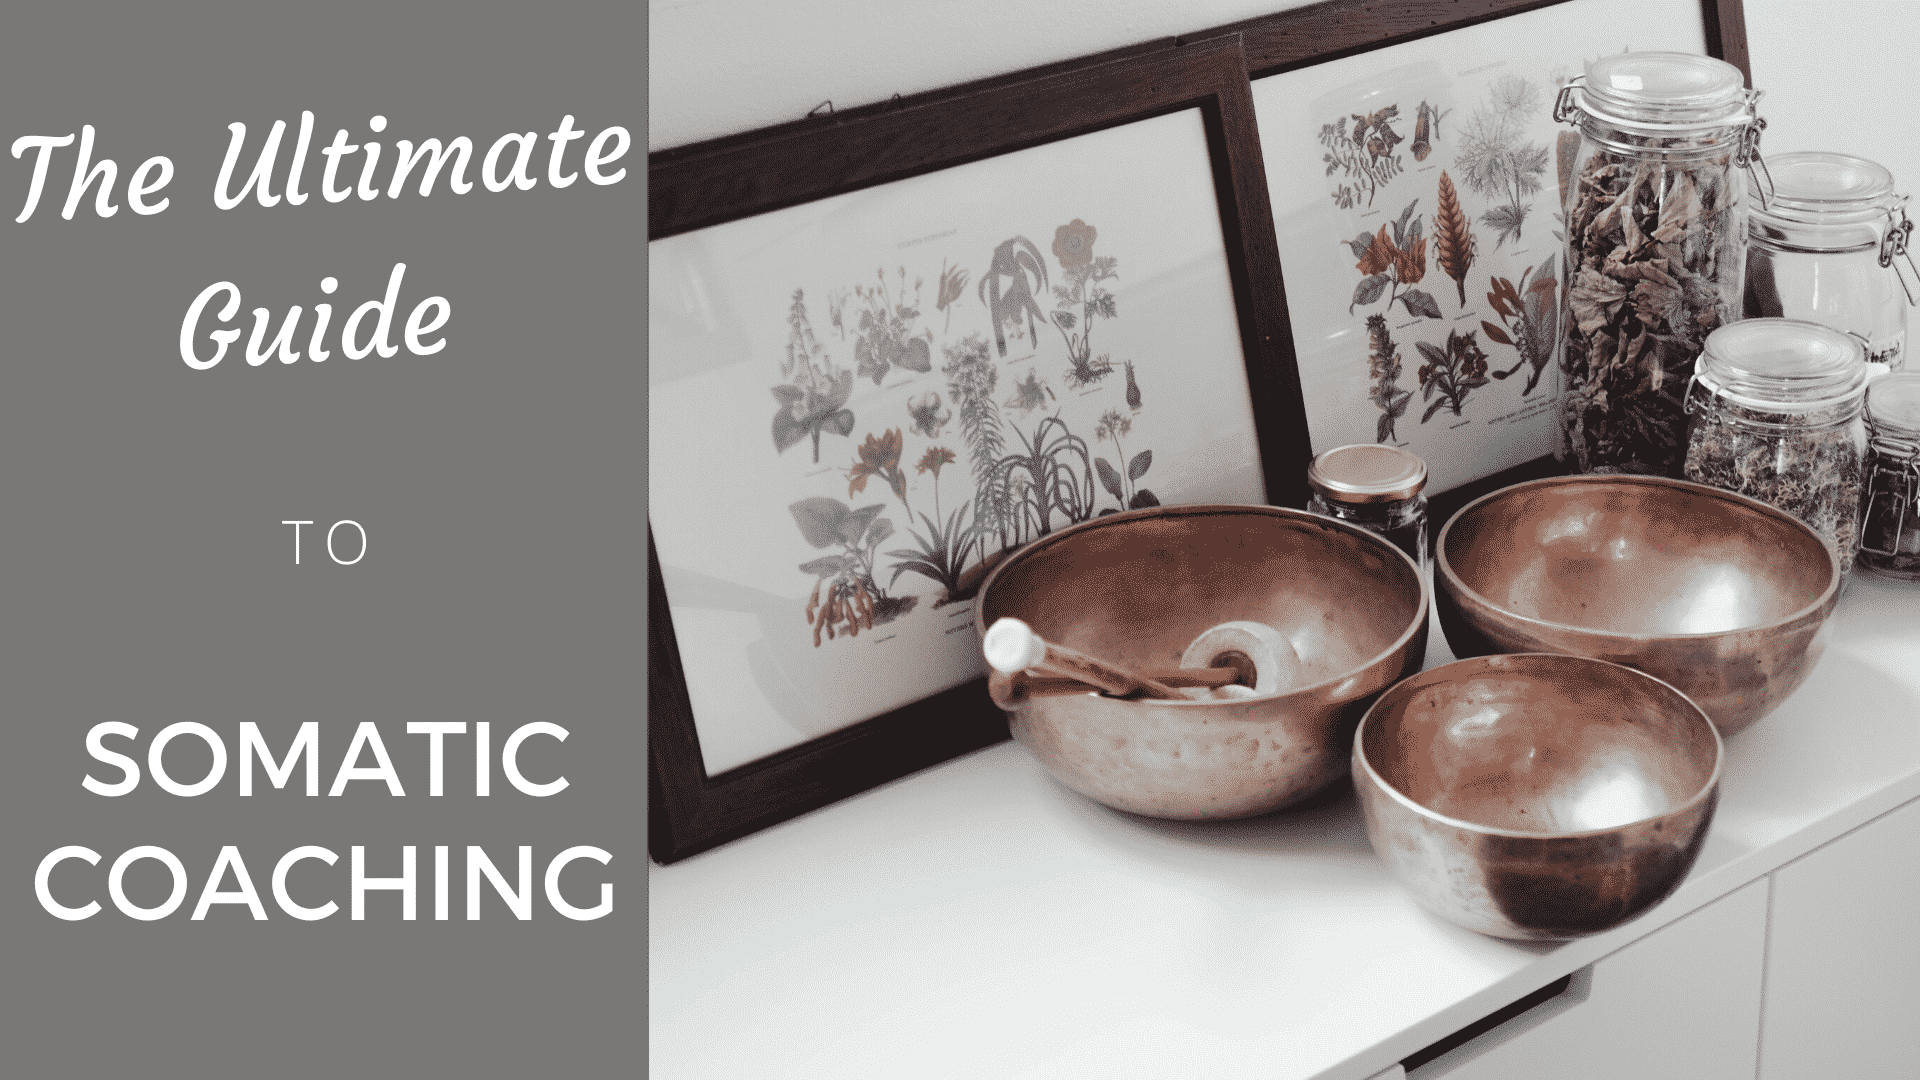 The Ultimate Guide to Somatic Coaching (2021) somatic coaching